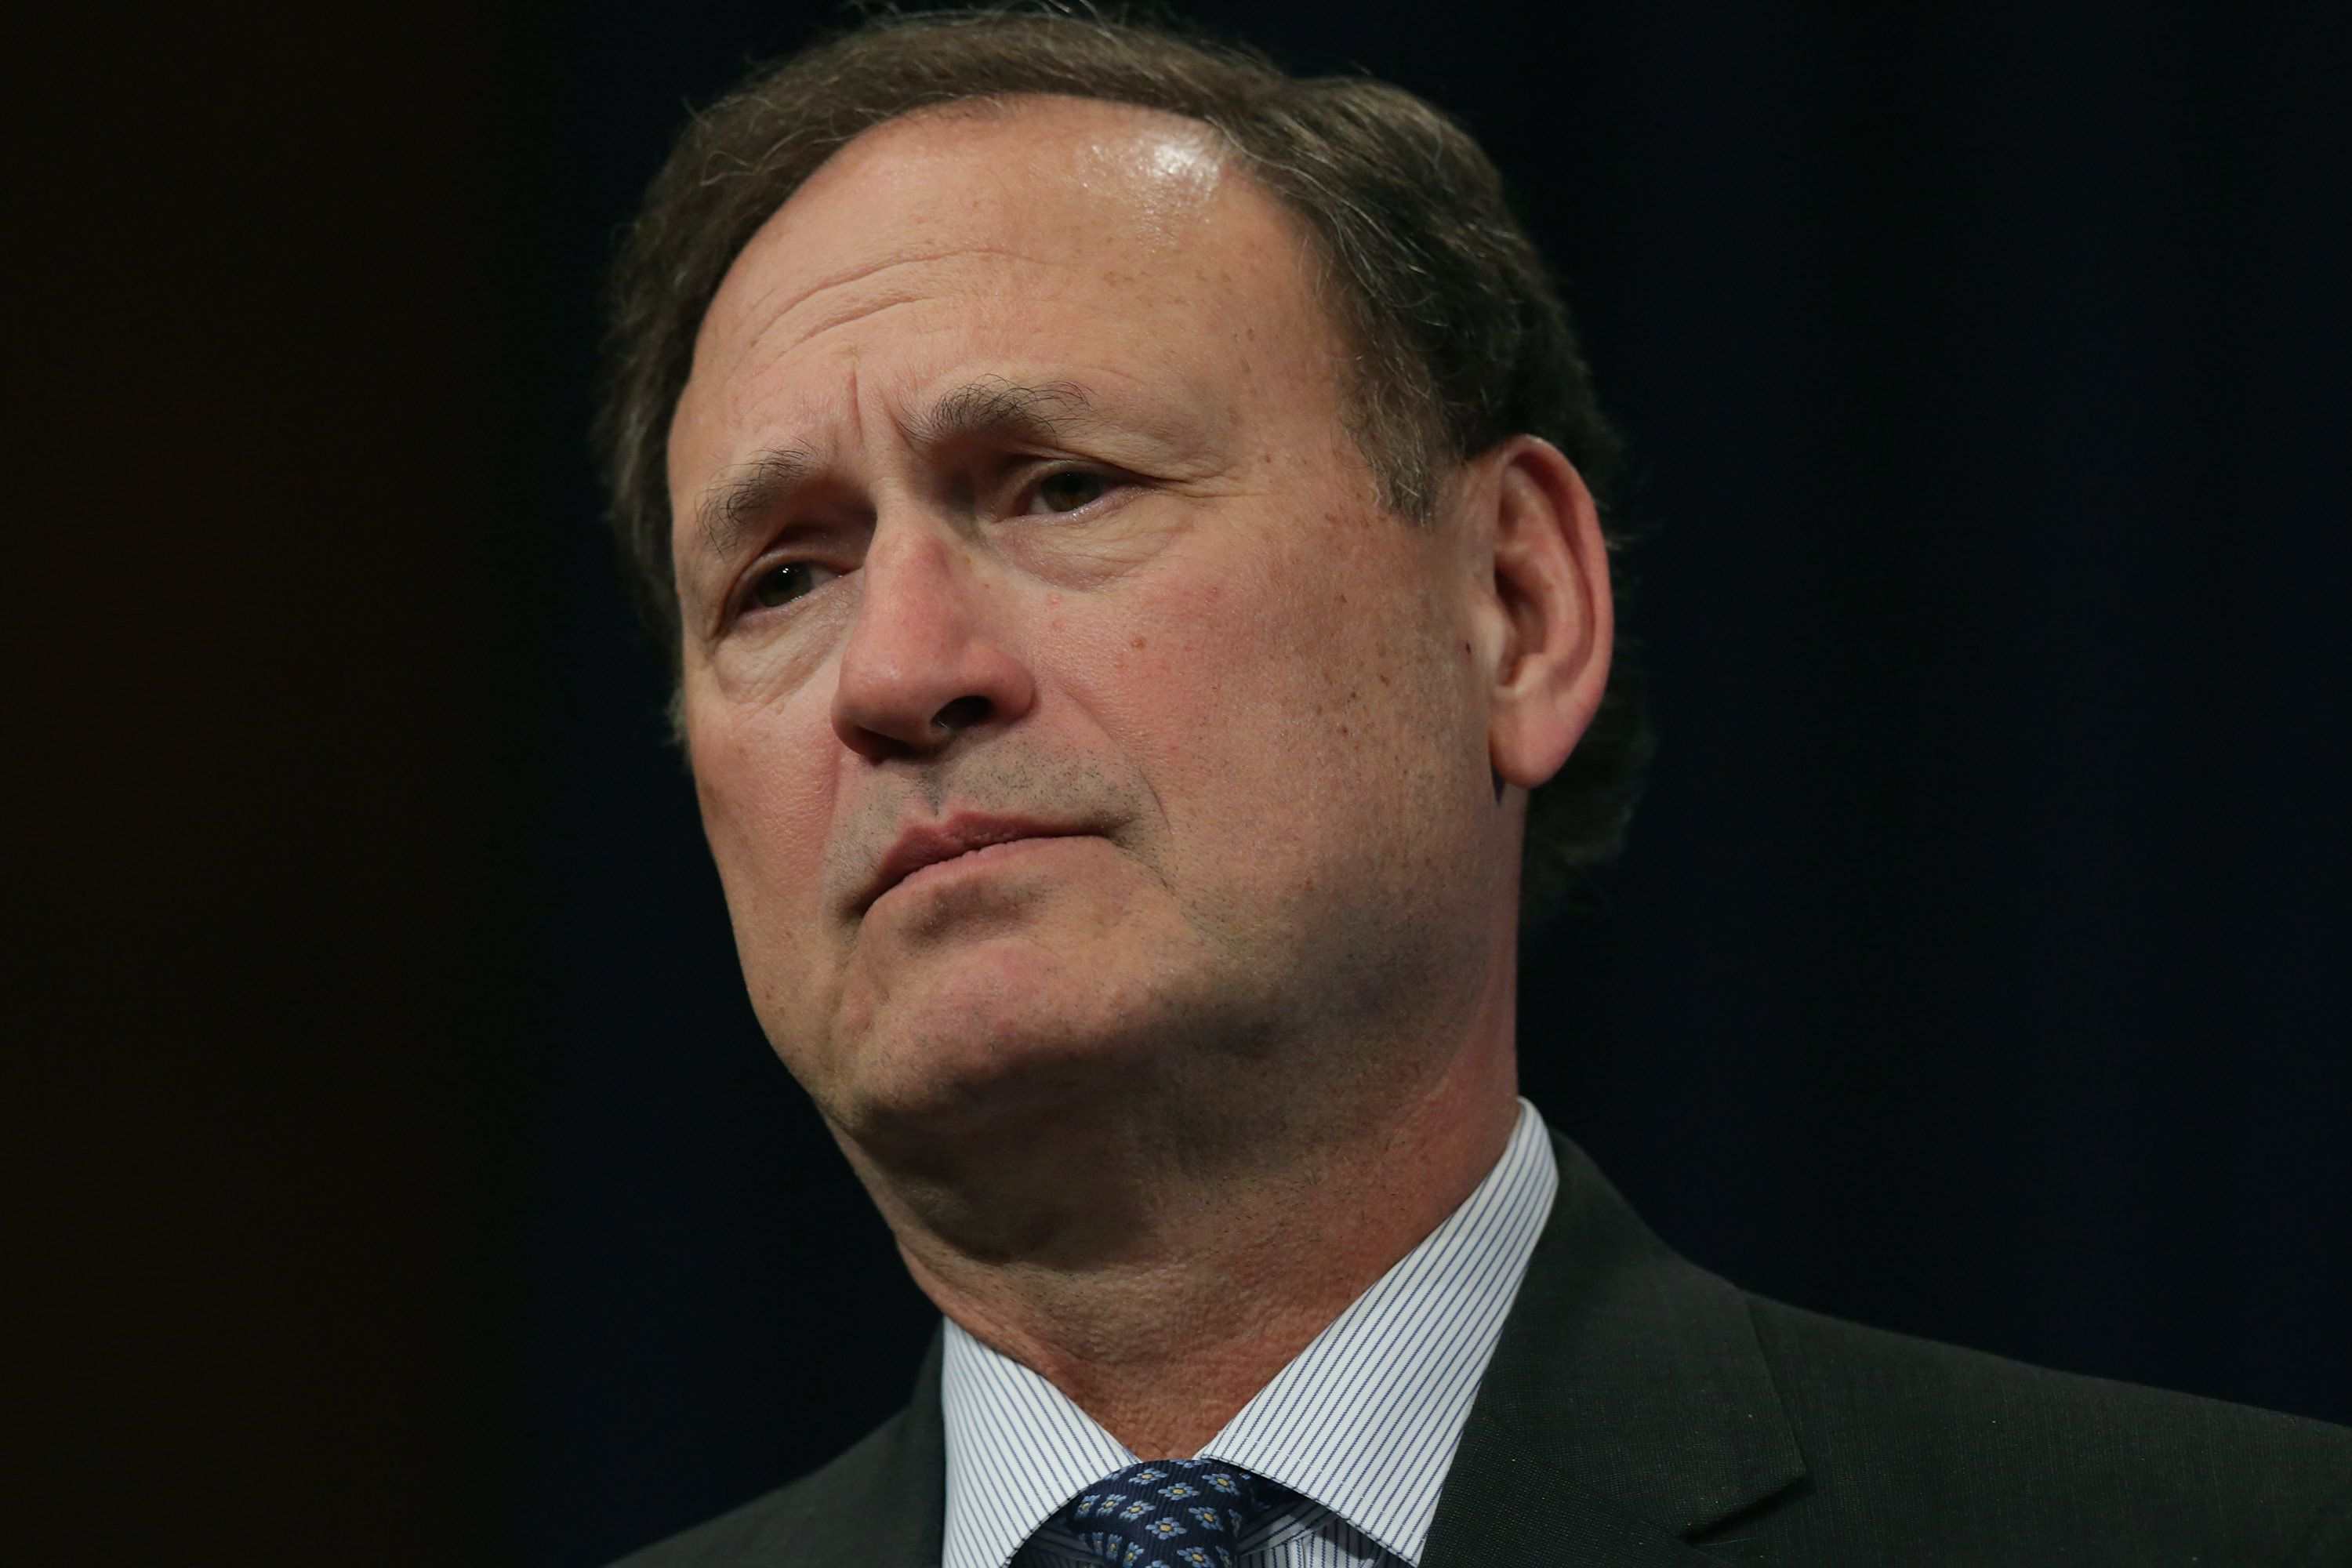 Justice Samuel Alito seems ready to cope with gridlock in the Senate over a replacement for his conservative colleague Antoni